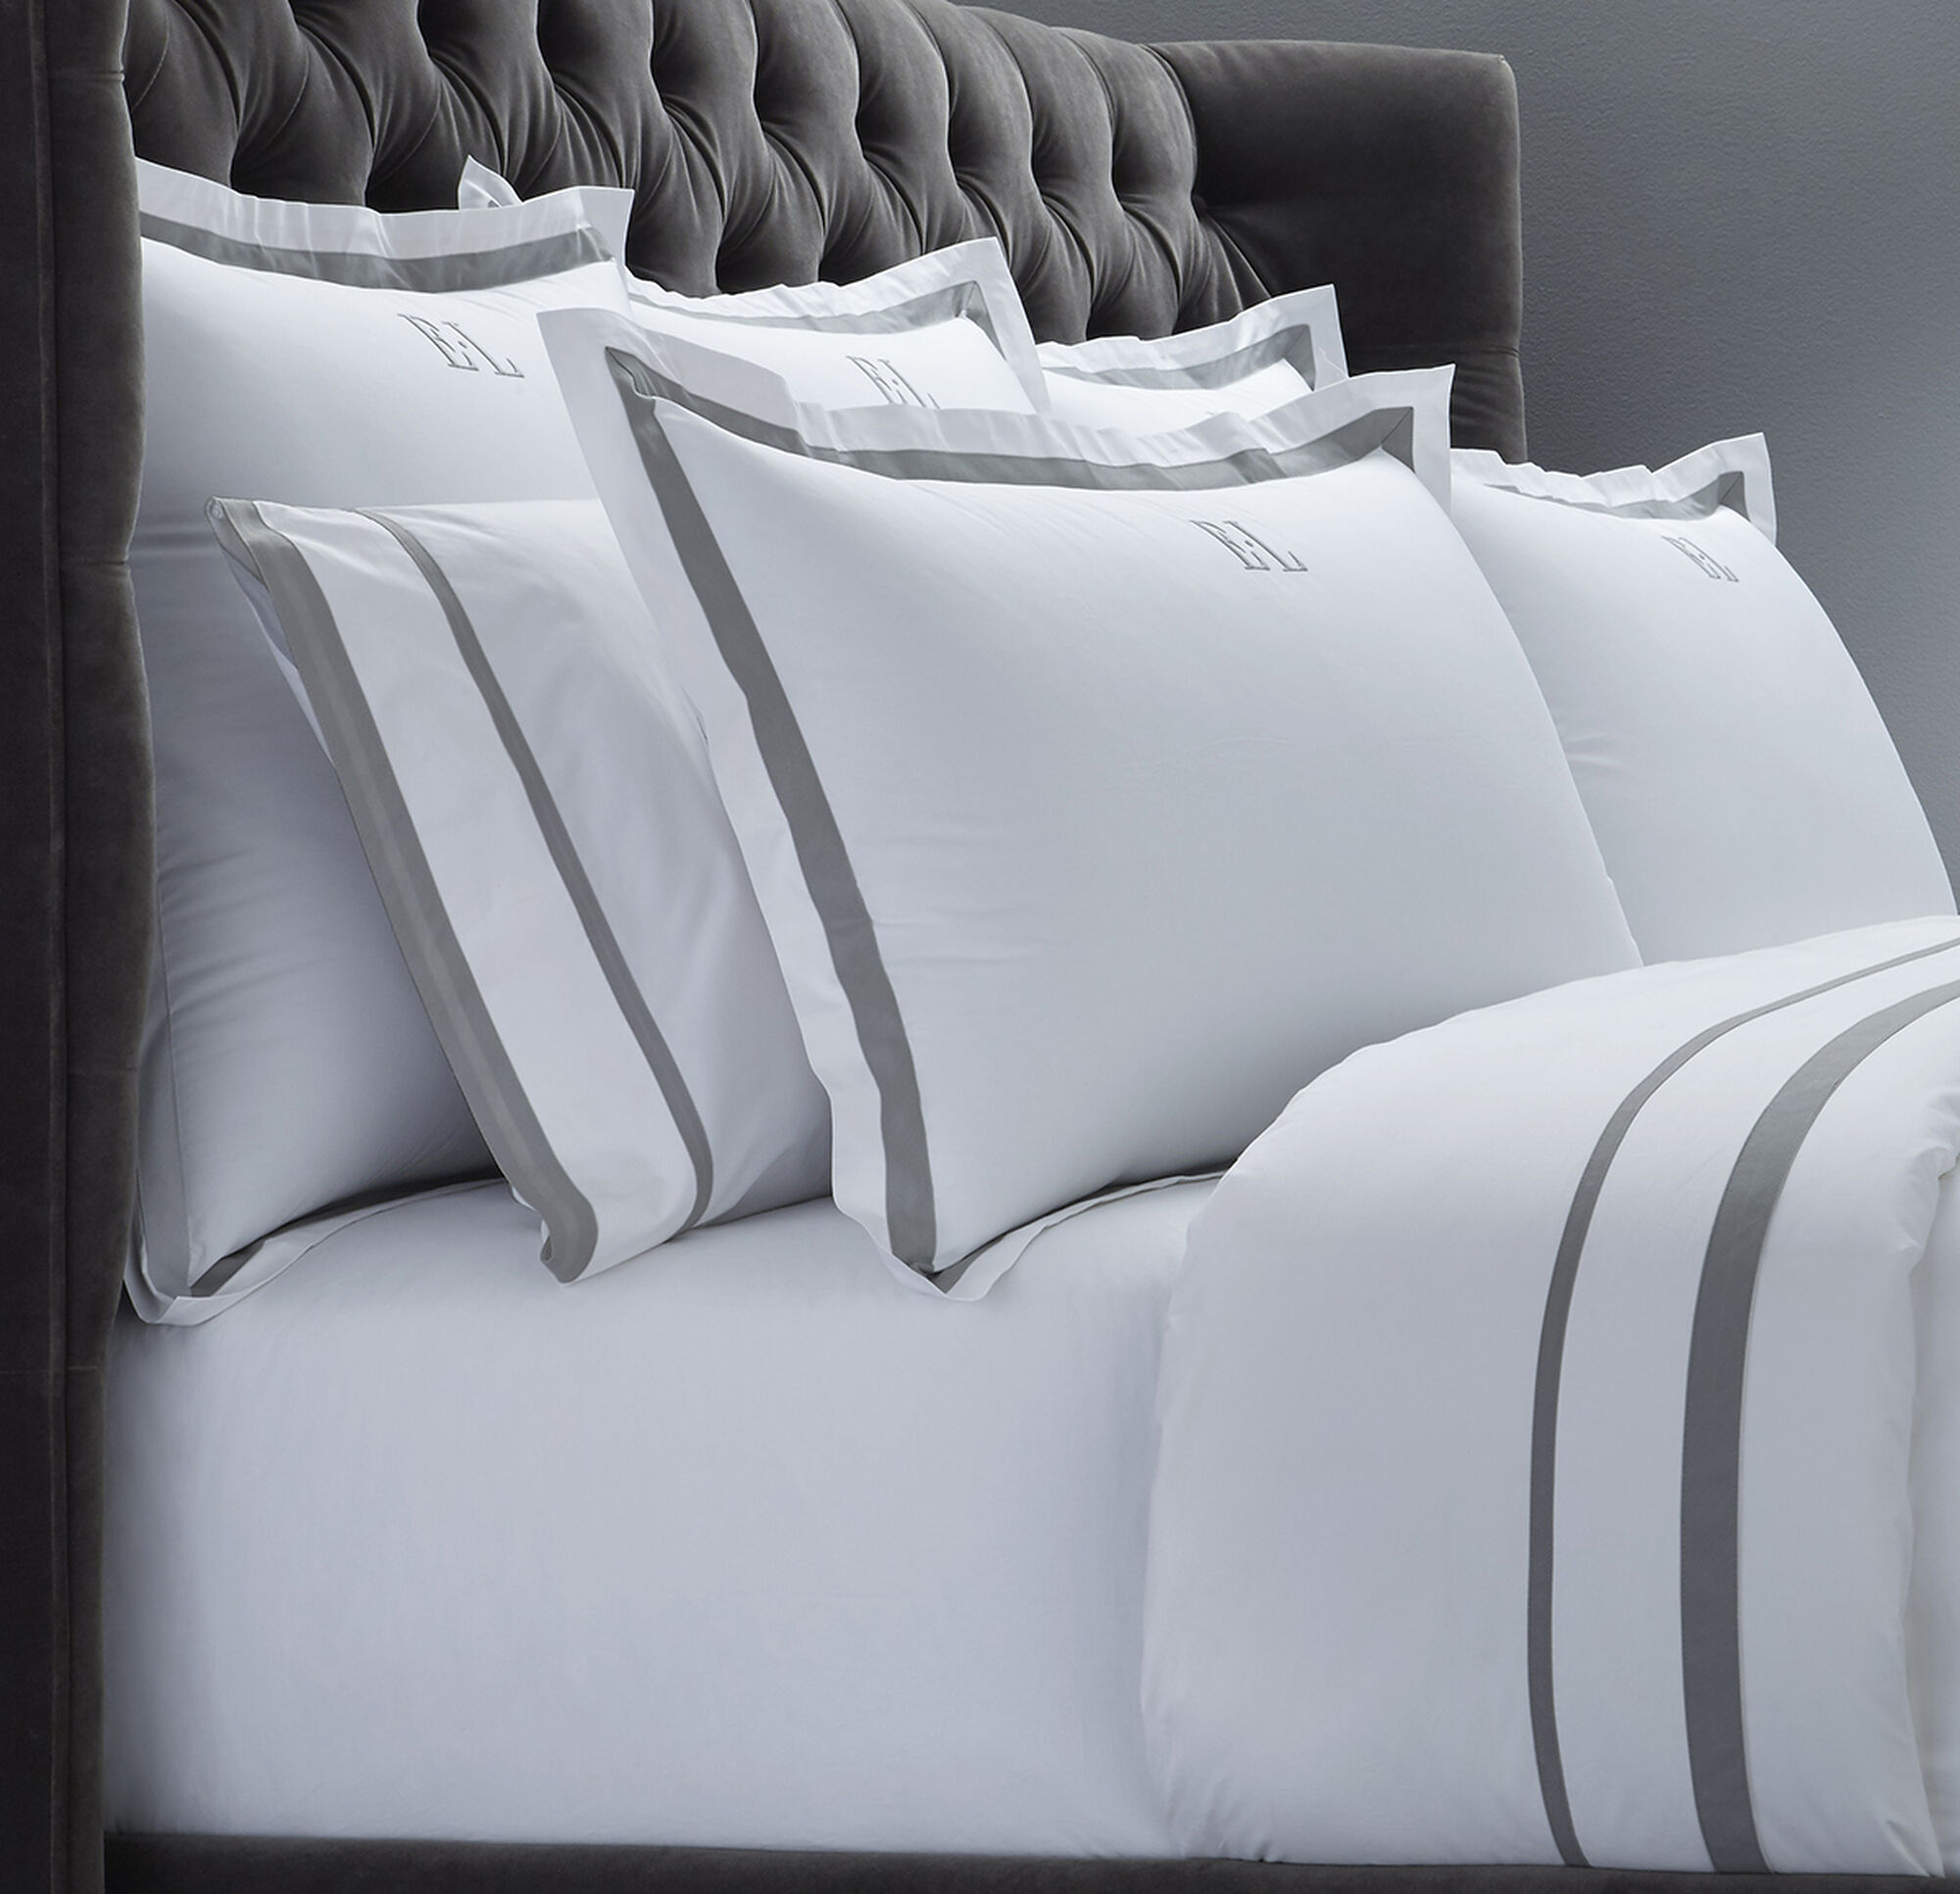 European Sham Pillow Cases